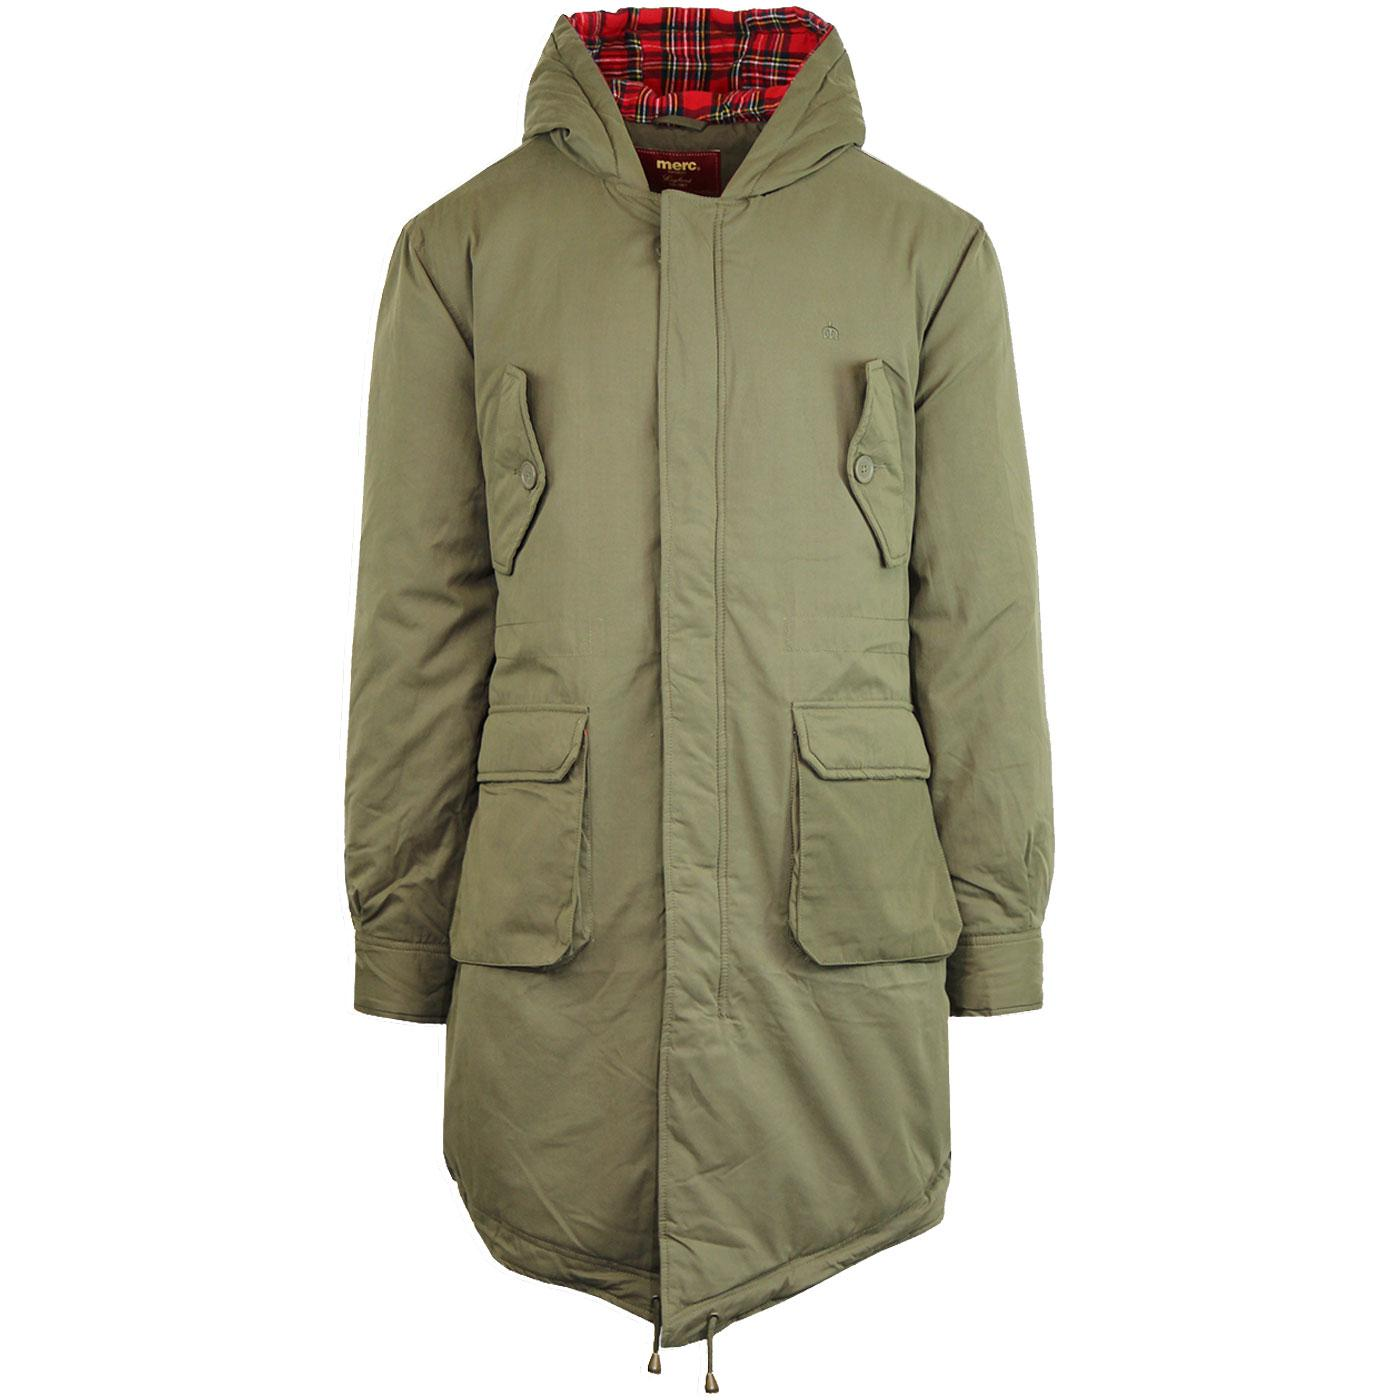 Tobias MERC Retro Sixties Mod Fishtail Parka Coat